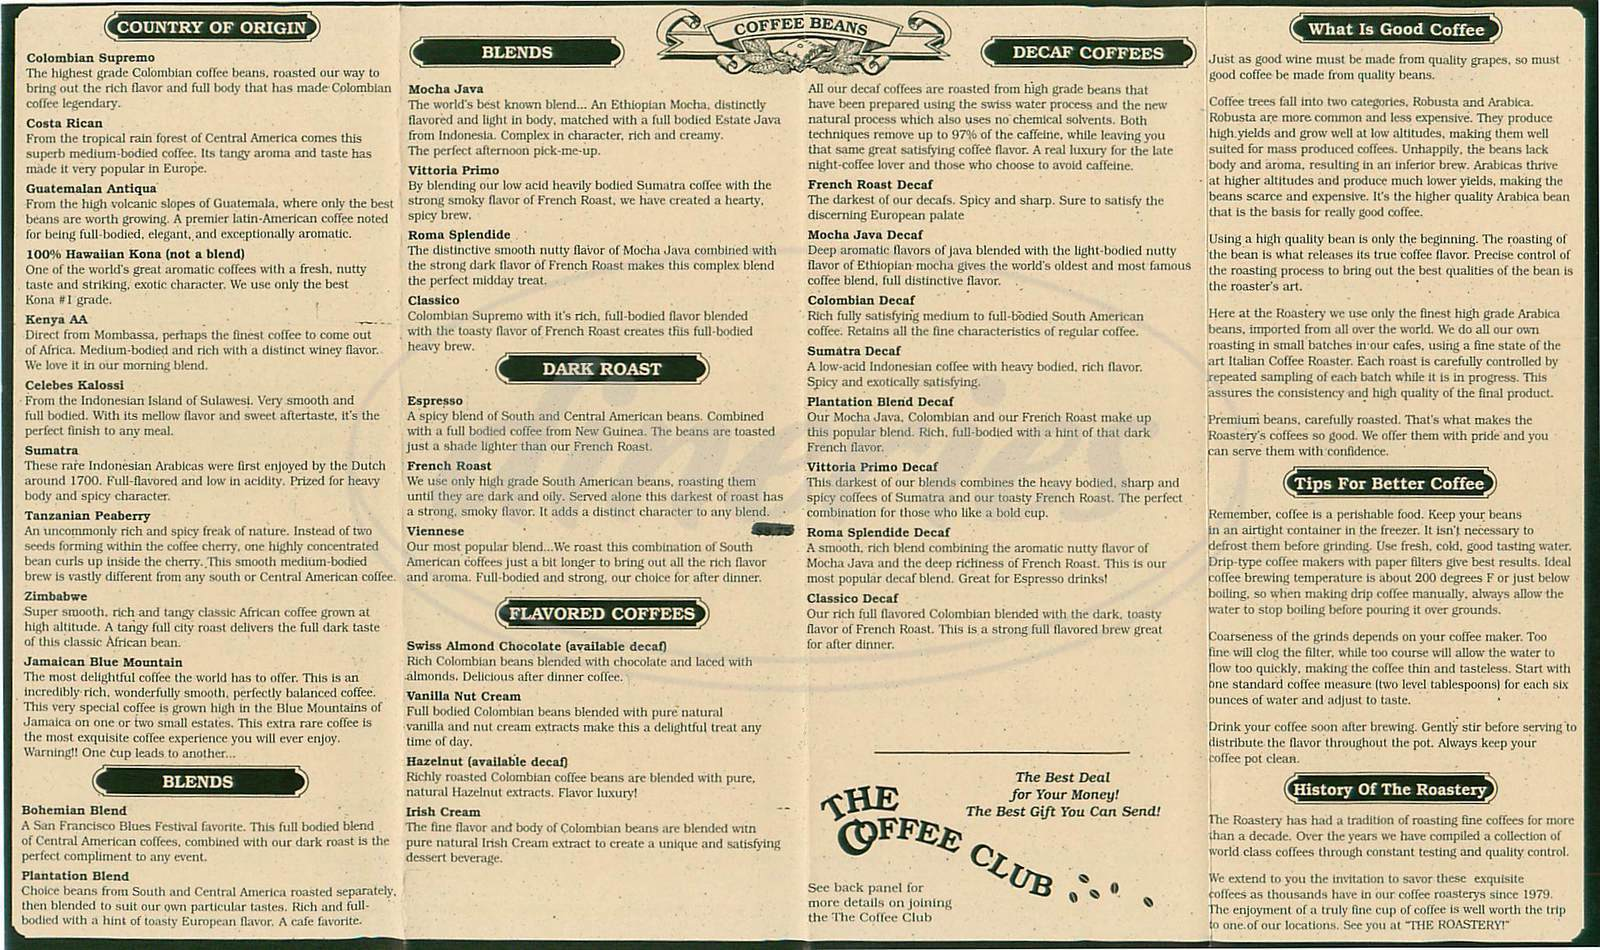 menu for The Coffee Roastery